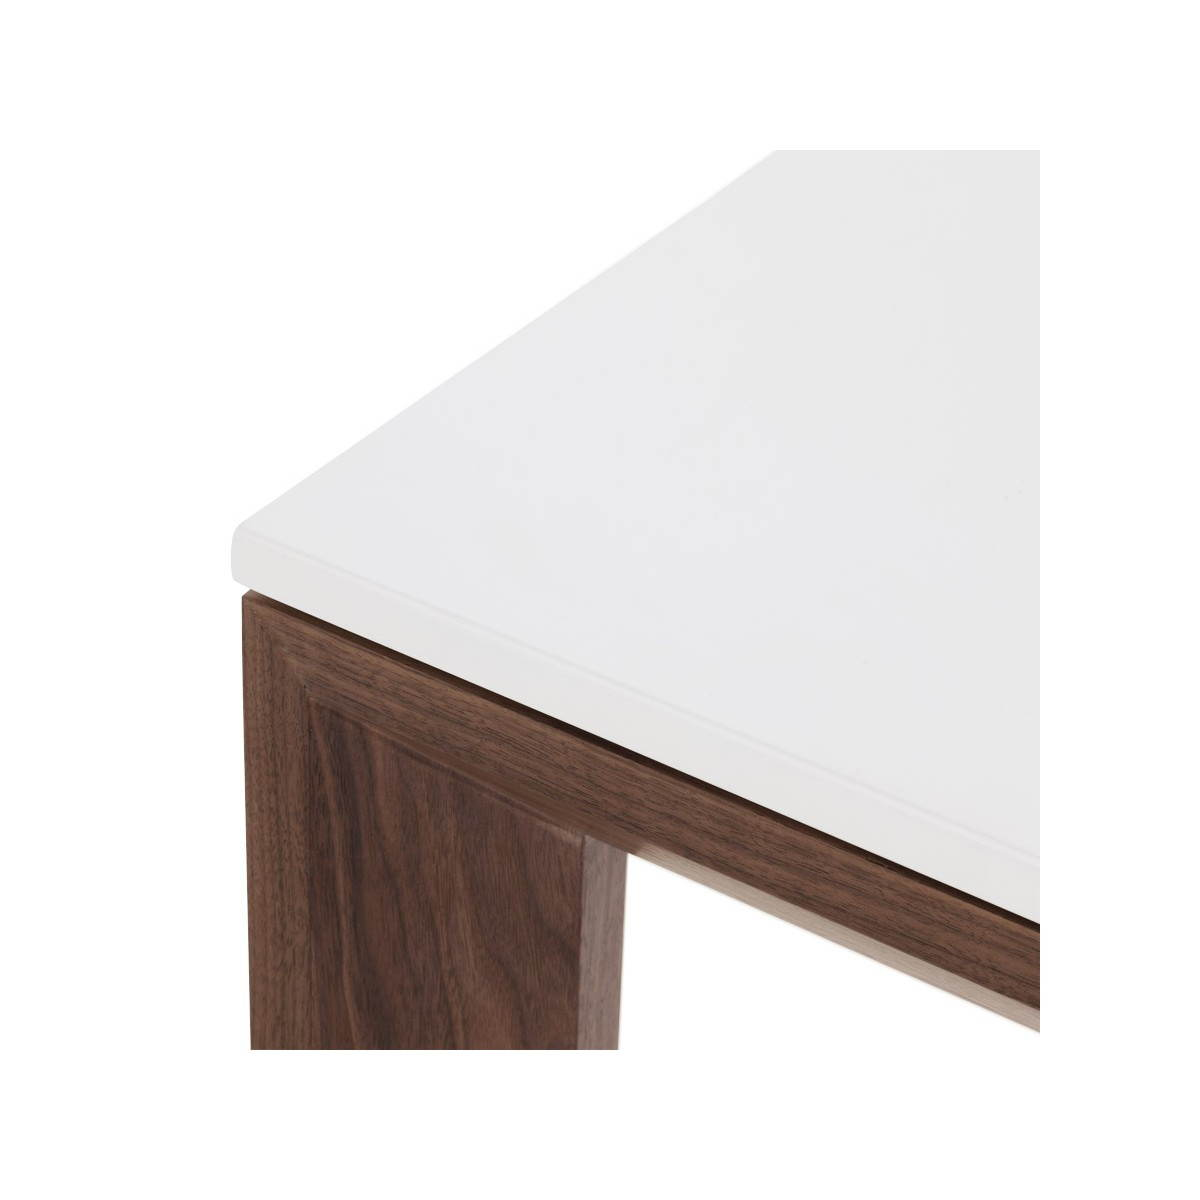 Table bois rallonge ikea for Table rectangulaire avec rallonge